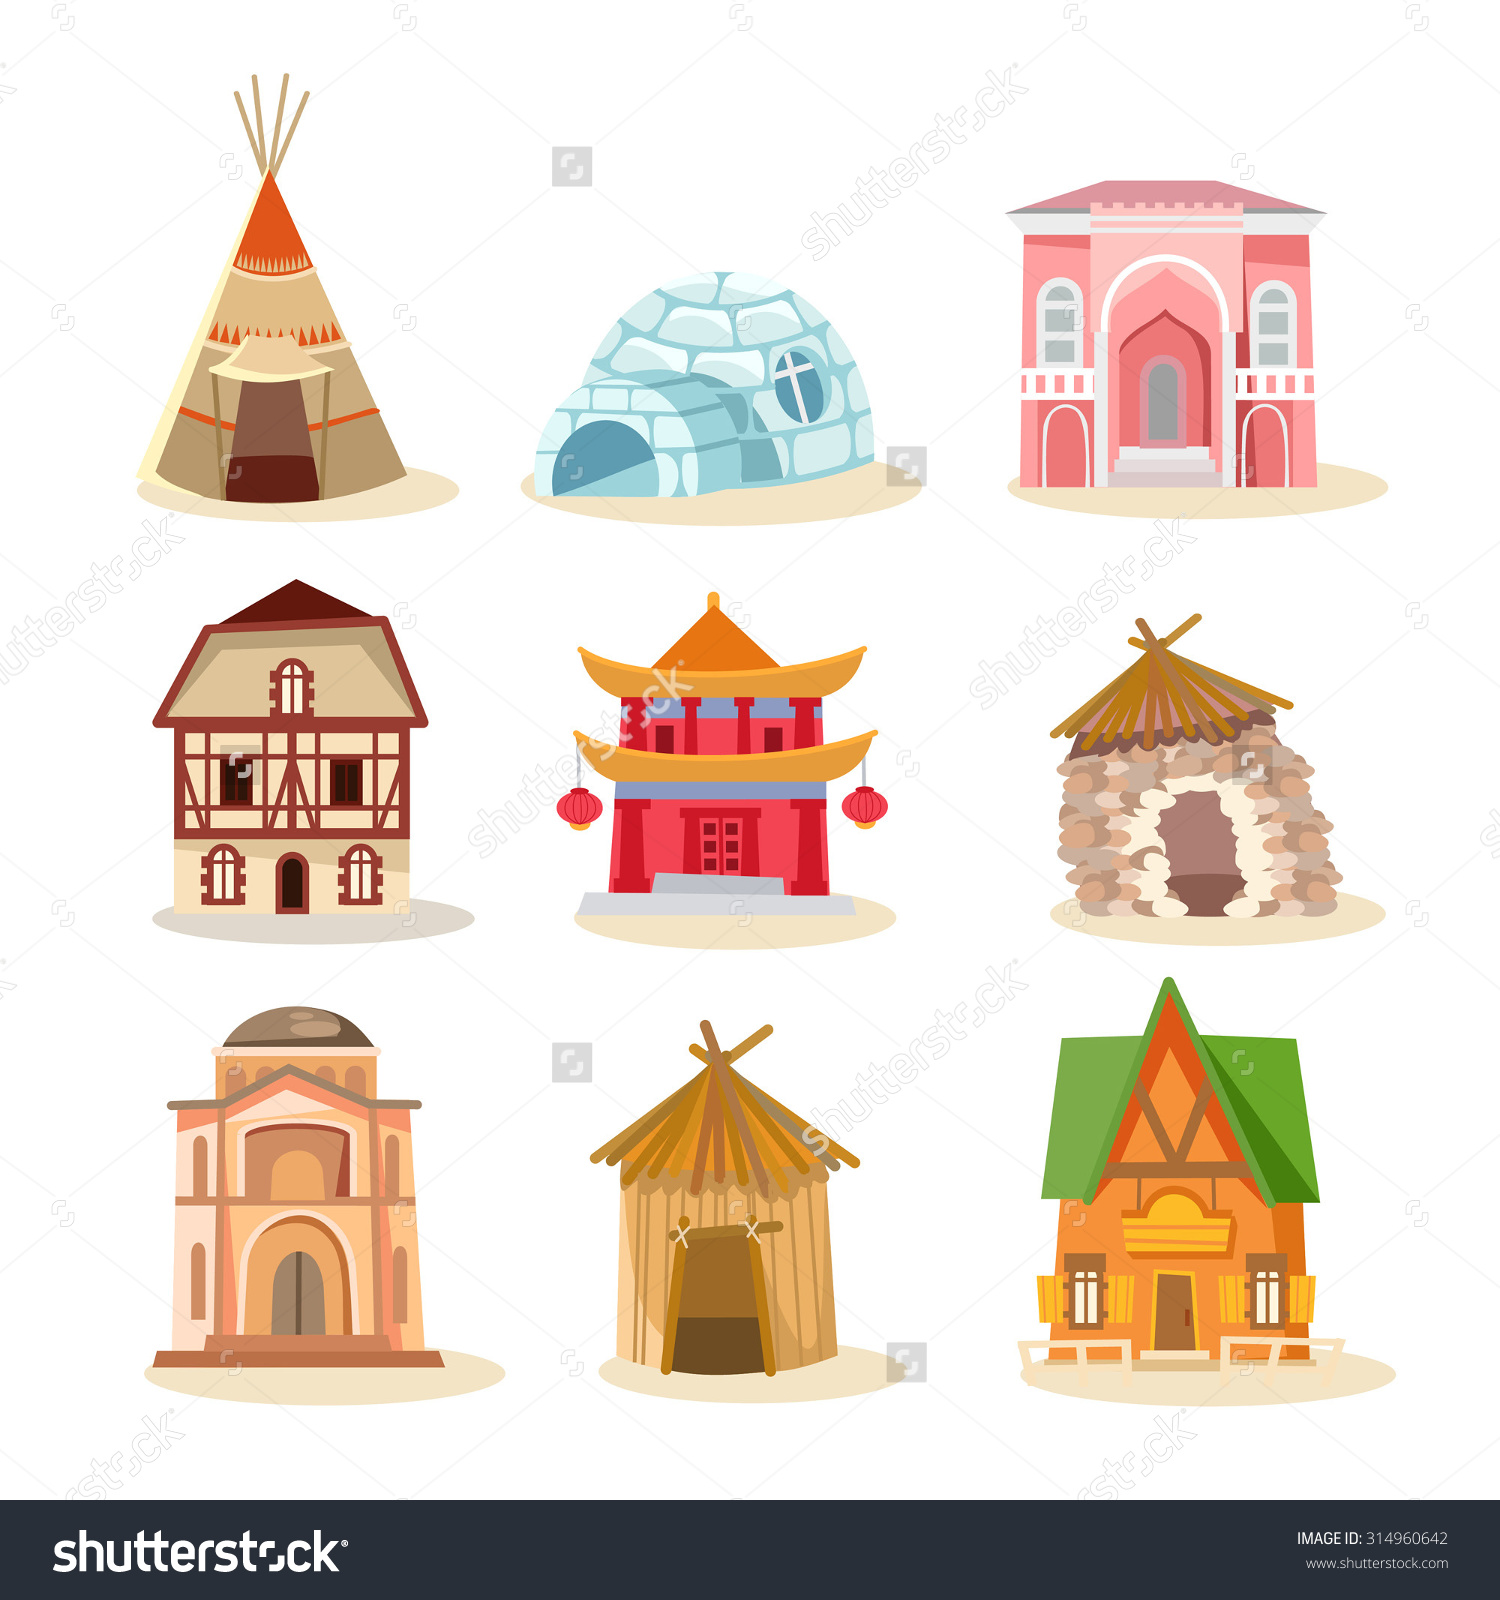 Traditional house clipart graphic freeuse Traditional house clipart - ClipartFest graphic freeuse